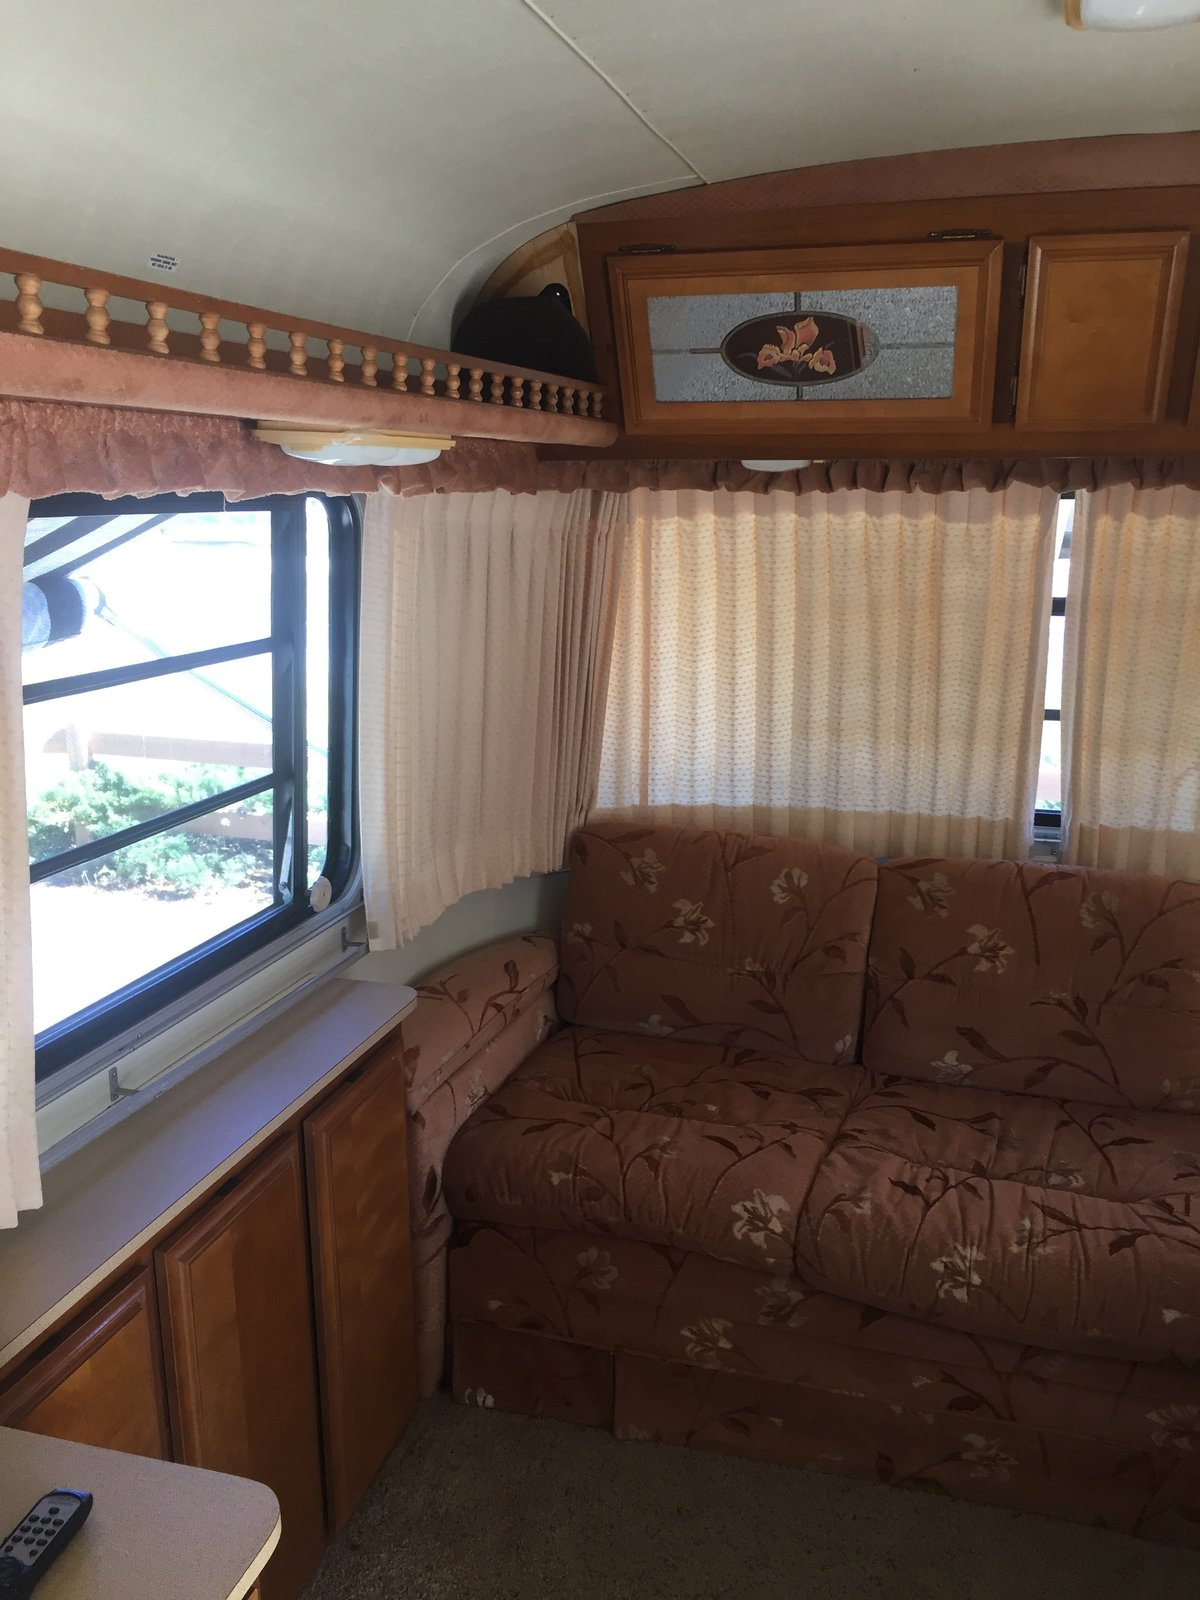 Before & After: A 1986 Fleetwood Trailer Gets a Cozy, Colorful DIY Makeover